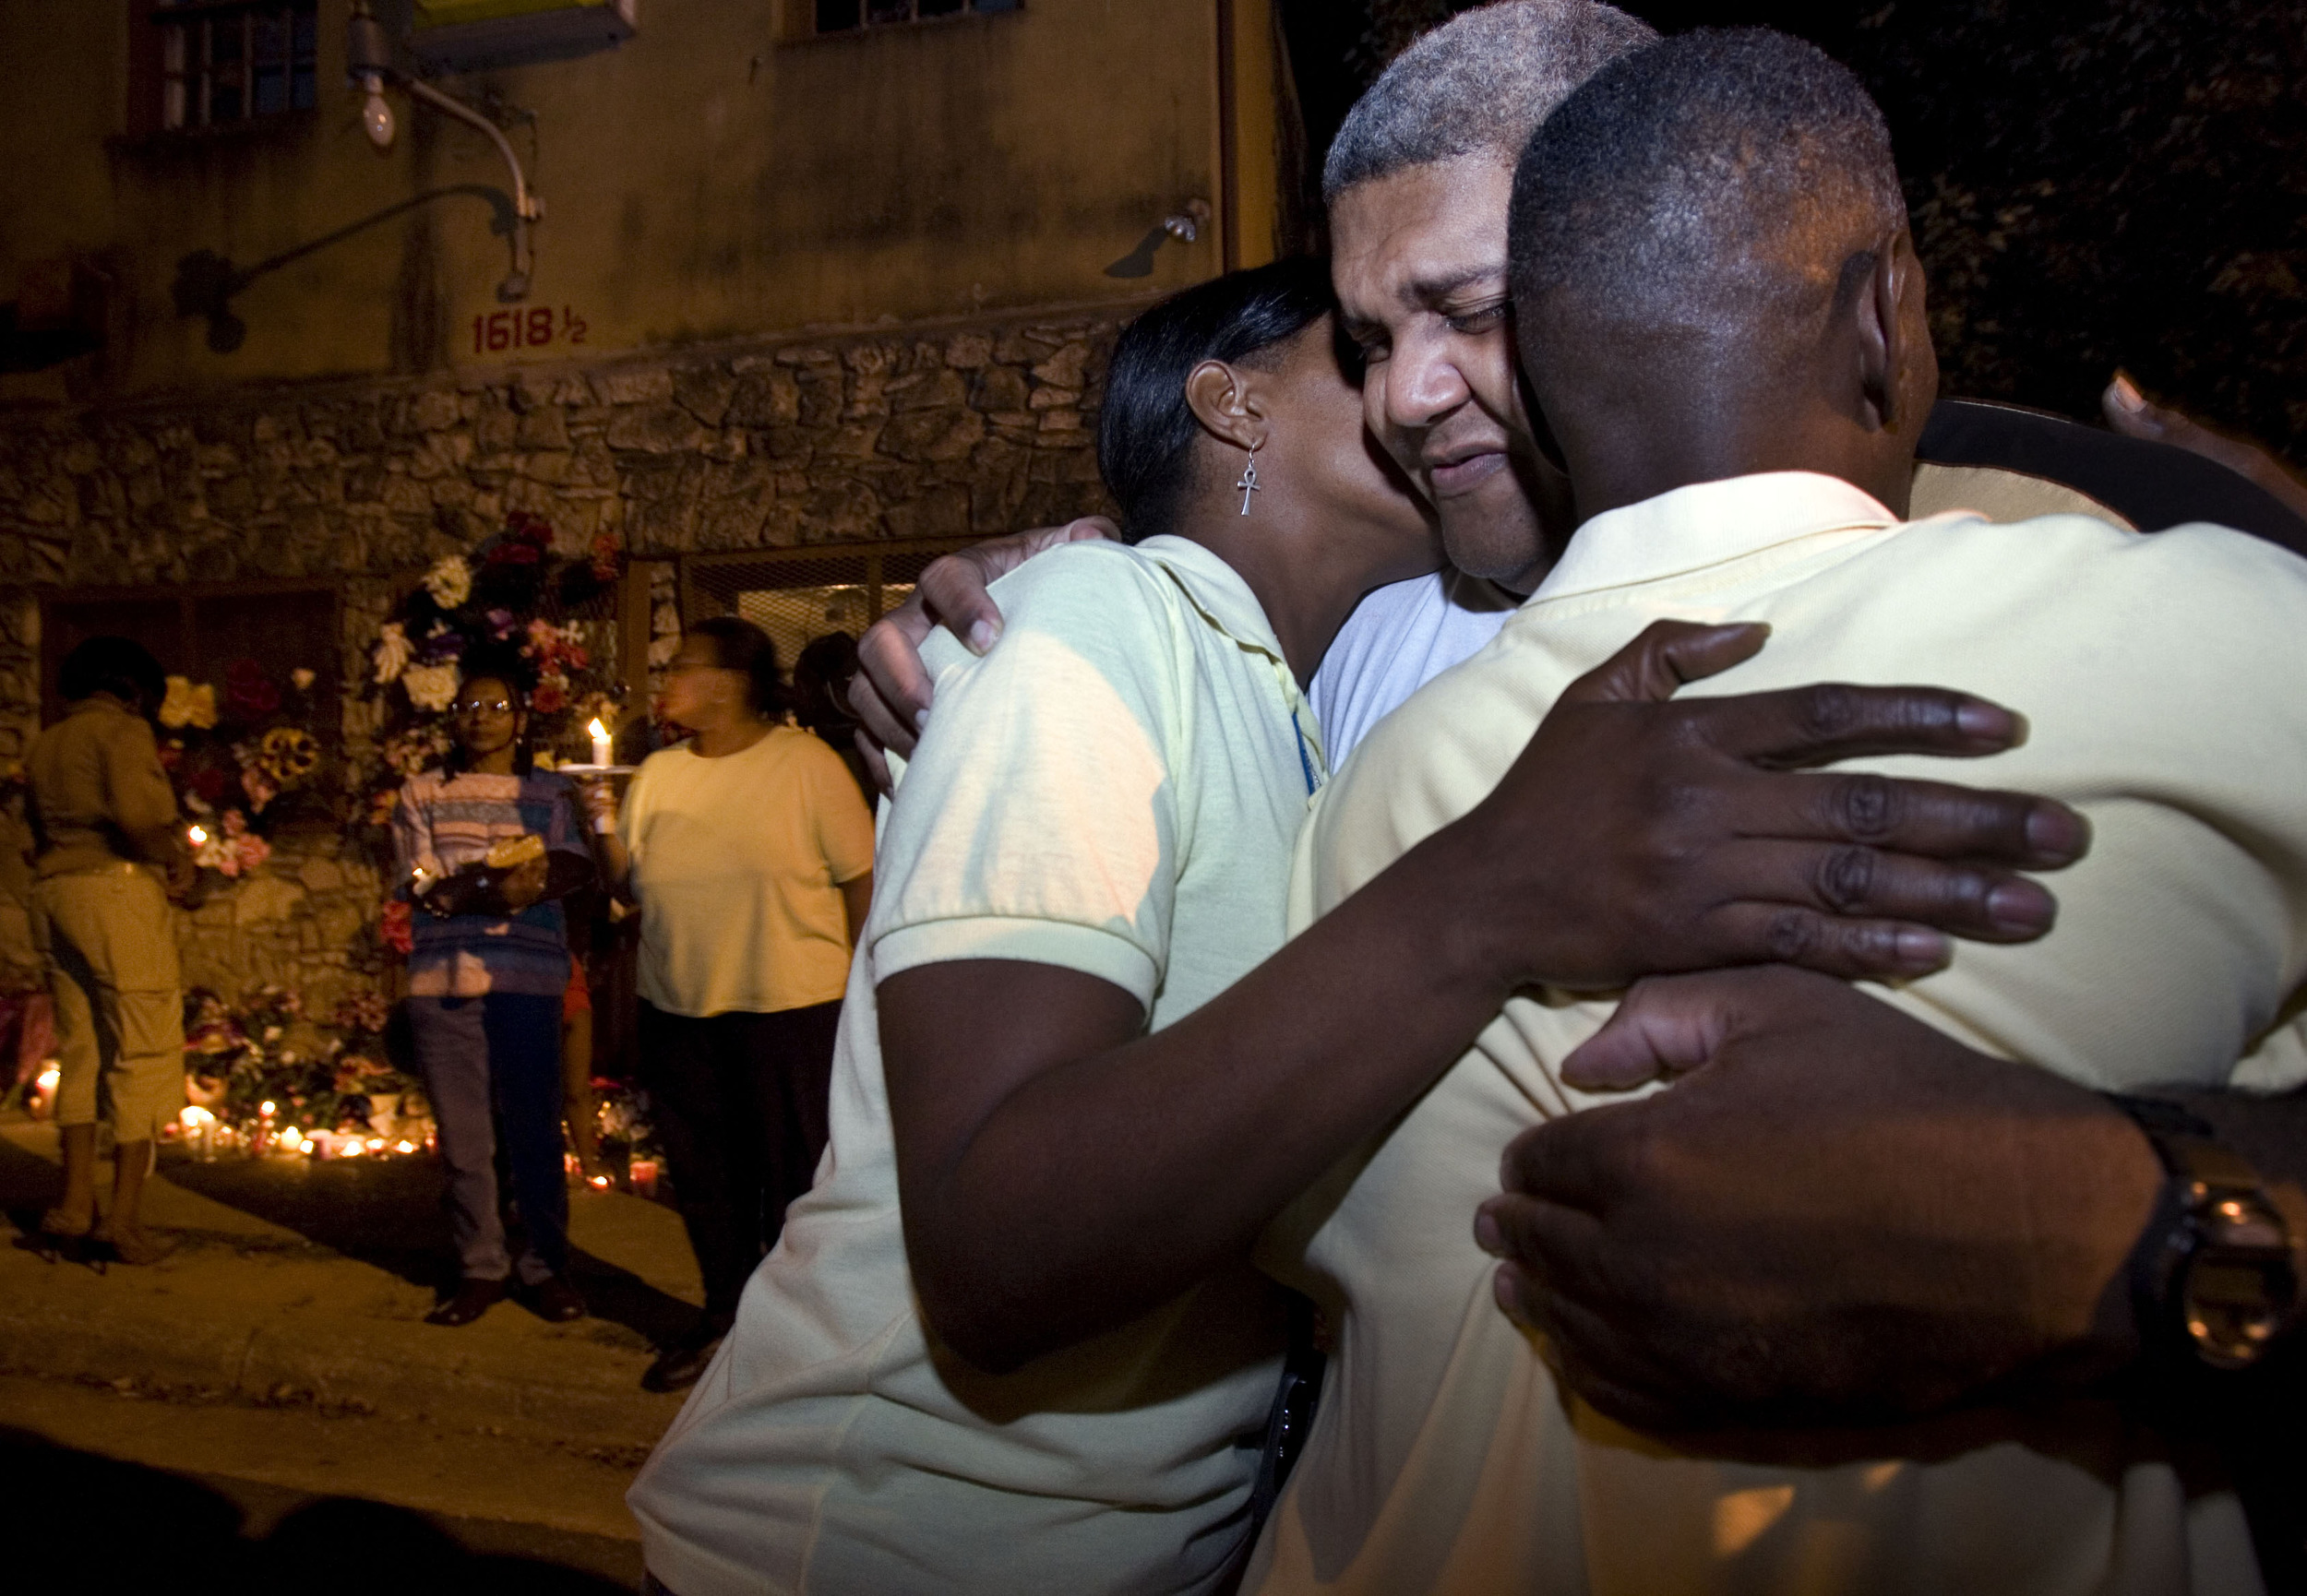 Ronald Wilson gets a hug in front of Cahal Market during a candlelight vigil for his mother Tuesday, October 9, 2007 in Nashville, Tenn. Classy Wilson, 70, a well-loved local and clerk at the market, was shot and killed by a middle schooler.